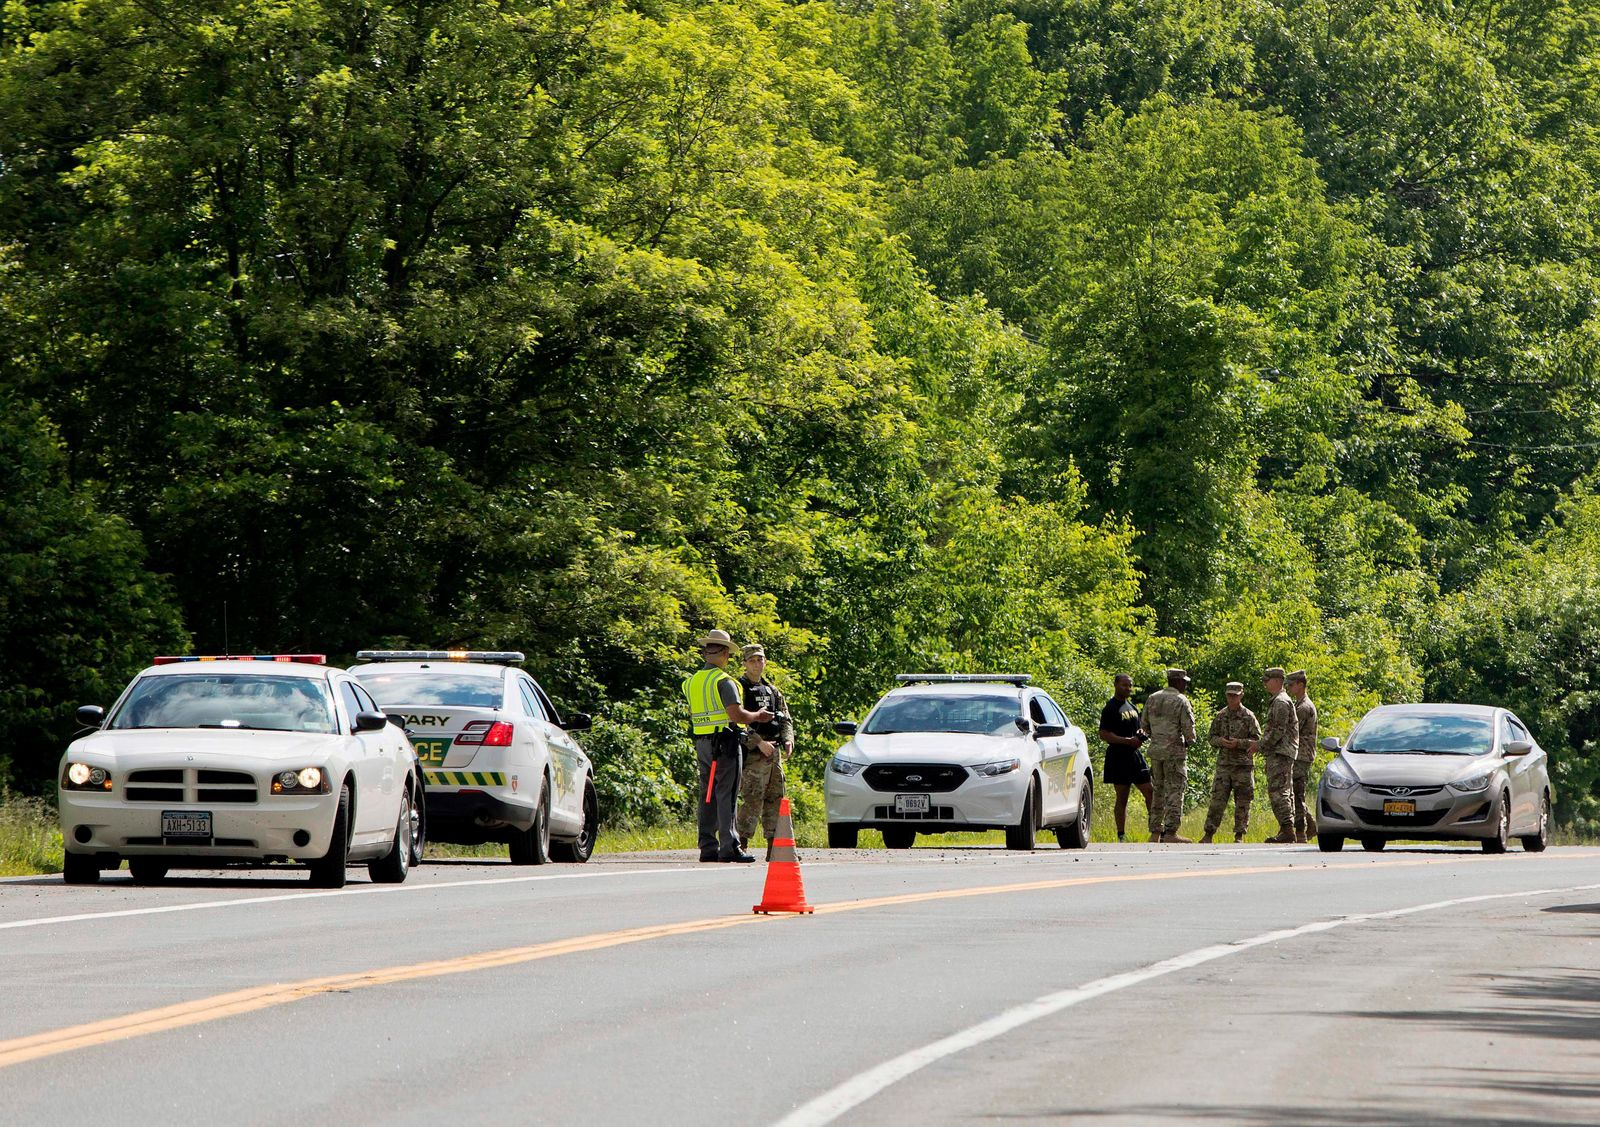 Military police and civilian first responders stand along Route 293 in response to a rollover of an armored personnel vehicle in which at least one person was killed on Thursday, June 6, 2019, in Cornwall, N.Y.(AP Photo/Allyse Pulliam)